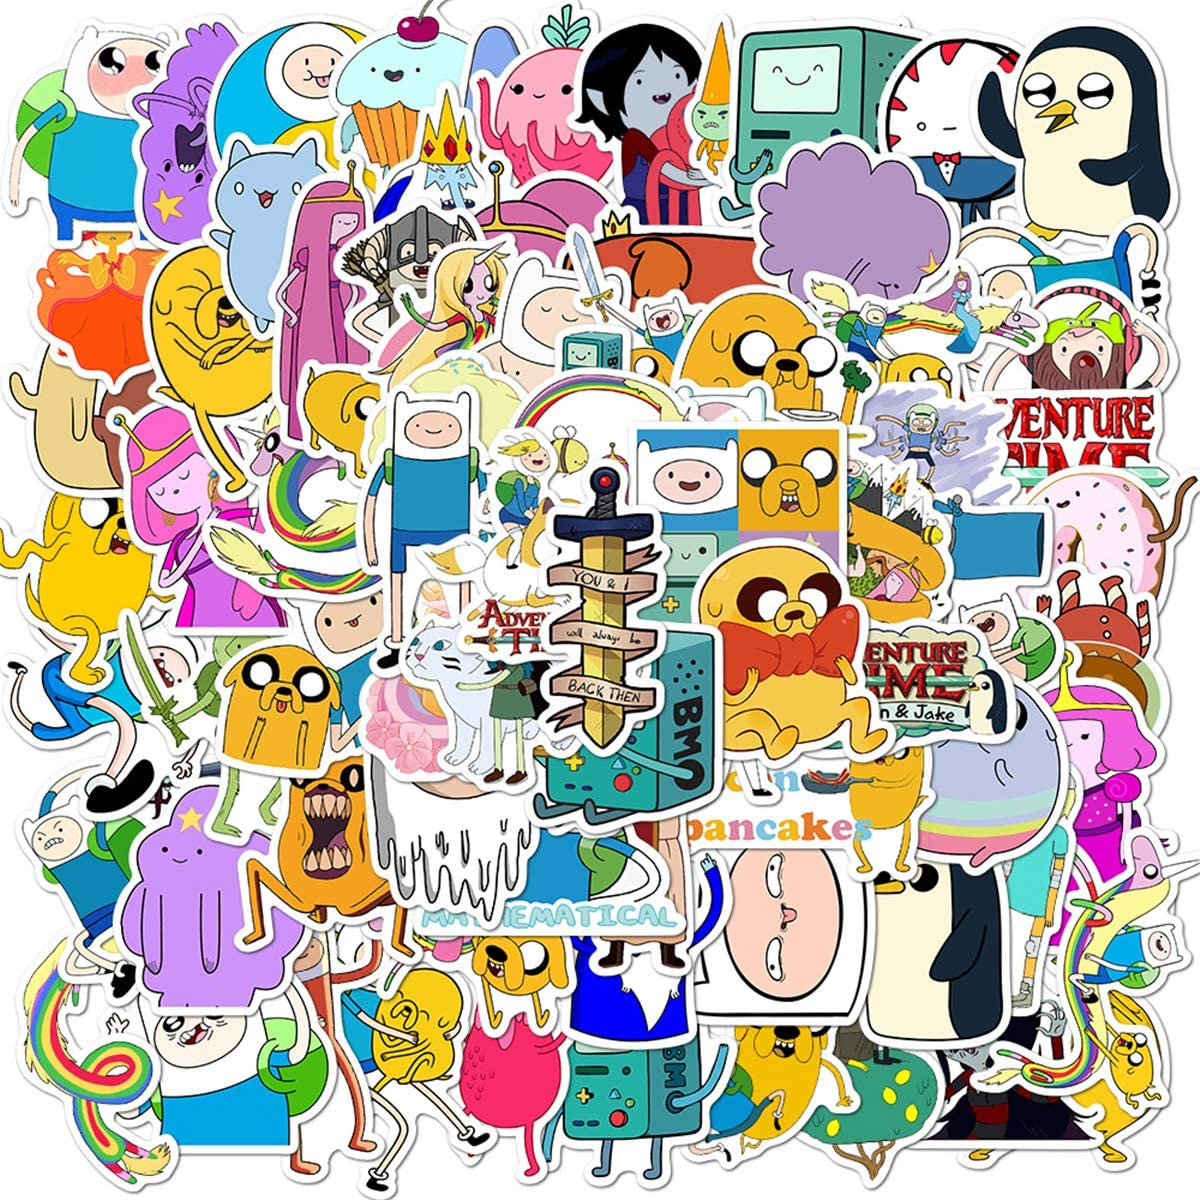 100PCS Adventure Time Stickers, American Cartoon Anime Adventure Time with Finn and Jake Stickers for Kids, Teens, Girls, Adults for Laptop, Water Bottle, Car, Skateboard. Adventure Time